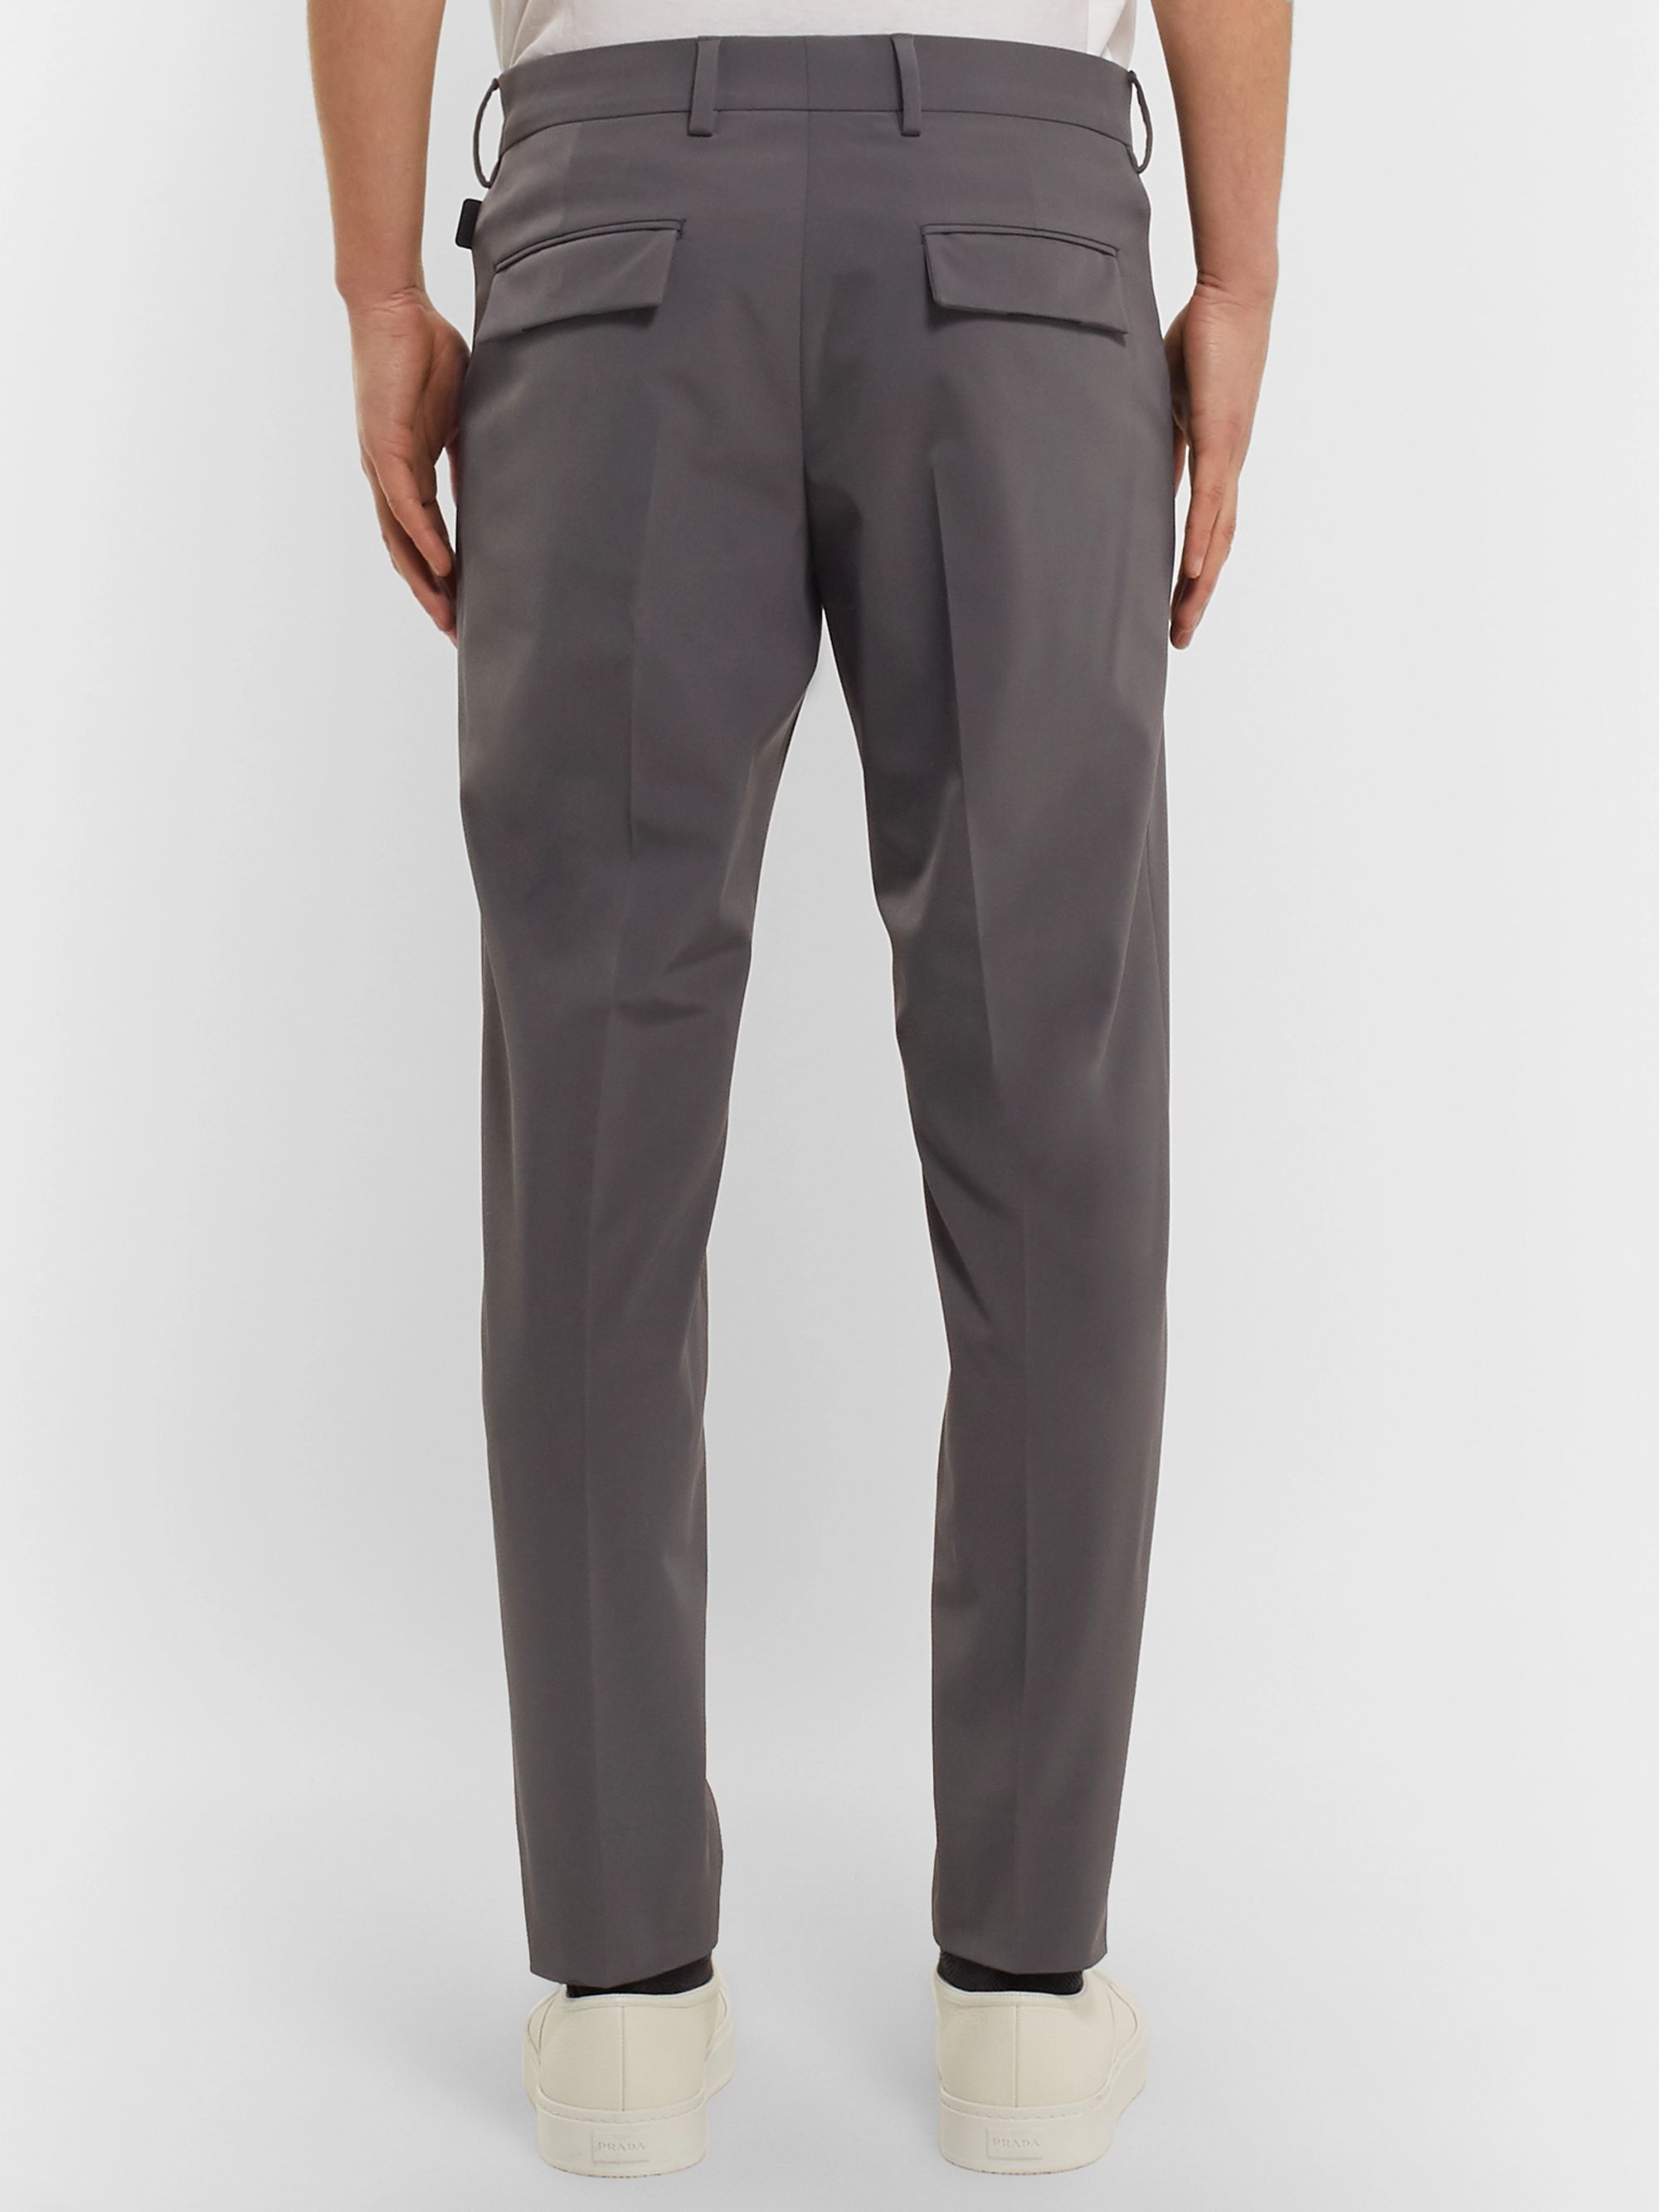 Prada Grey Slim-Fit Tapered Tech-Twill Trousers